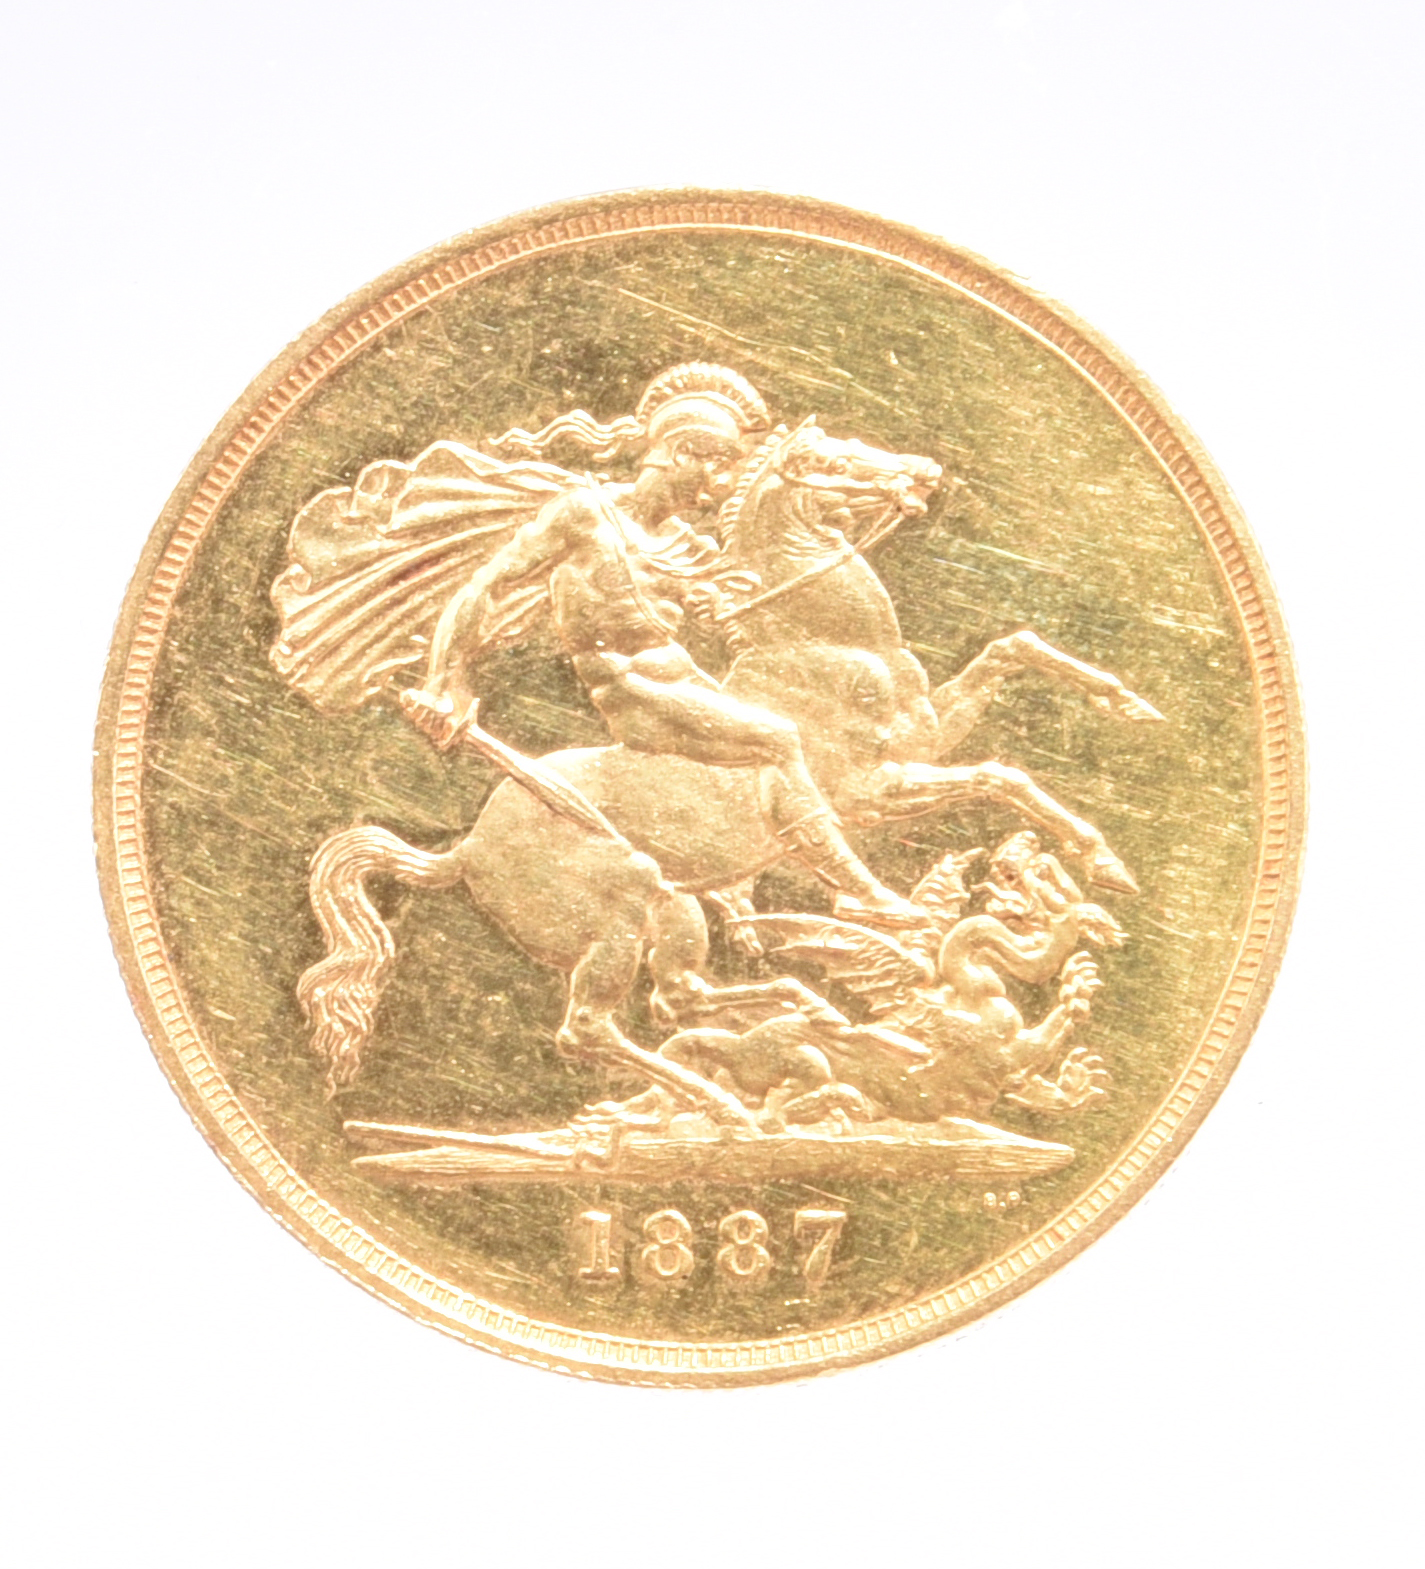 Victoria, gold five pounds, 1887 (S 3864), hairlining and minor marks to fields, otherwise about - Image 2 of 2